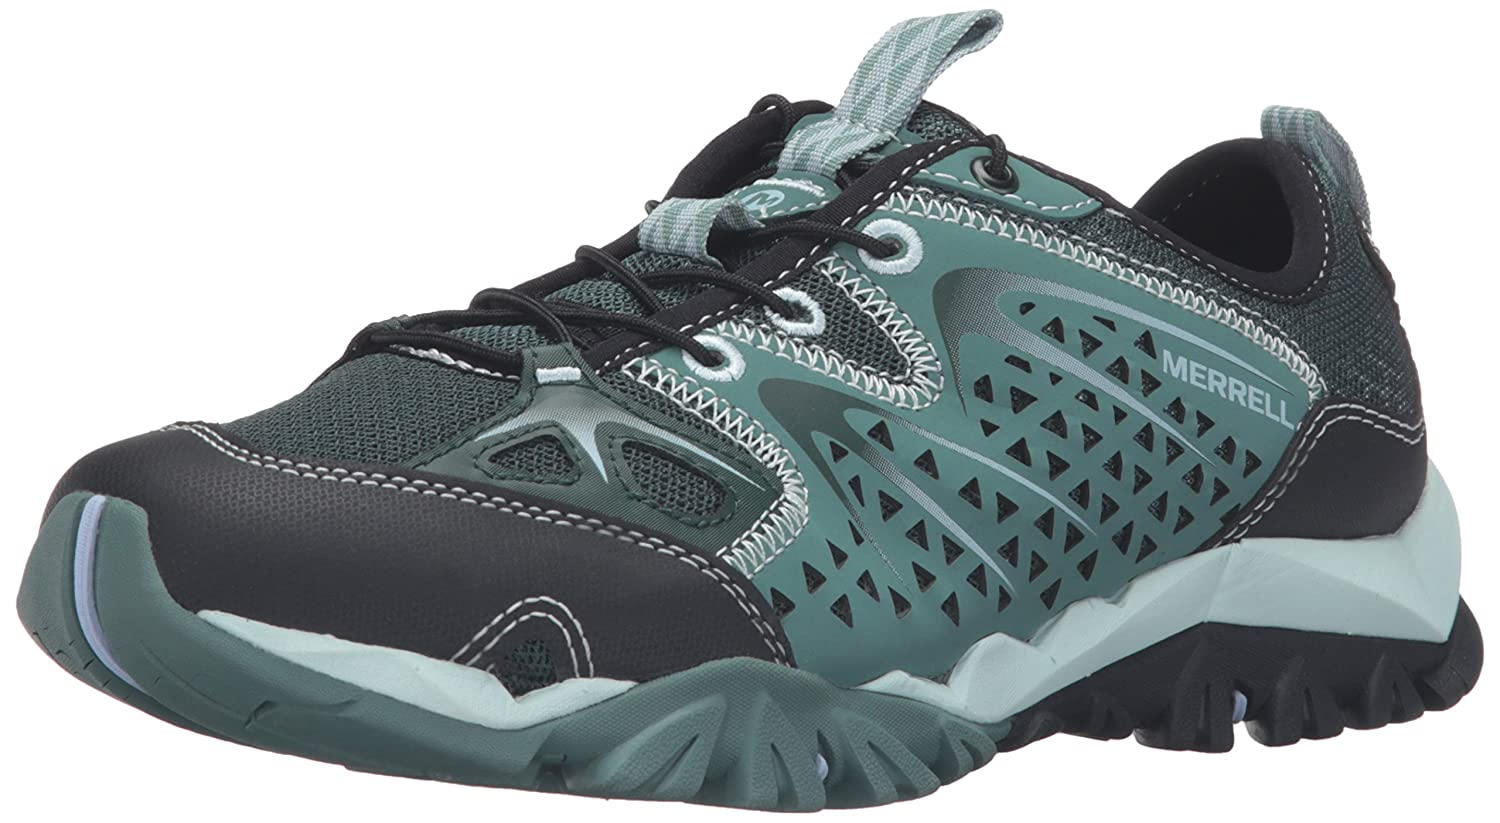 Merrell Women's Capra Rapid Water-Friendly Hiking Shoe B01FC0Y2H4 9 B(M) US|Sagebrush Green